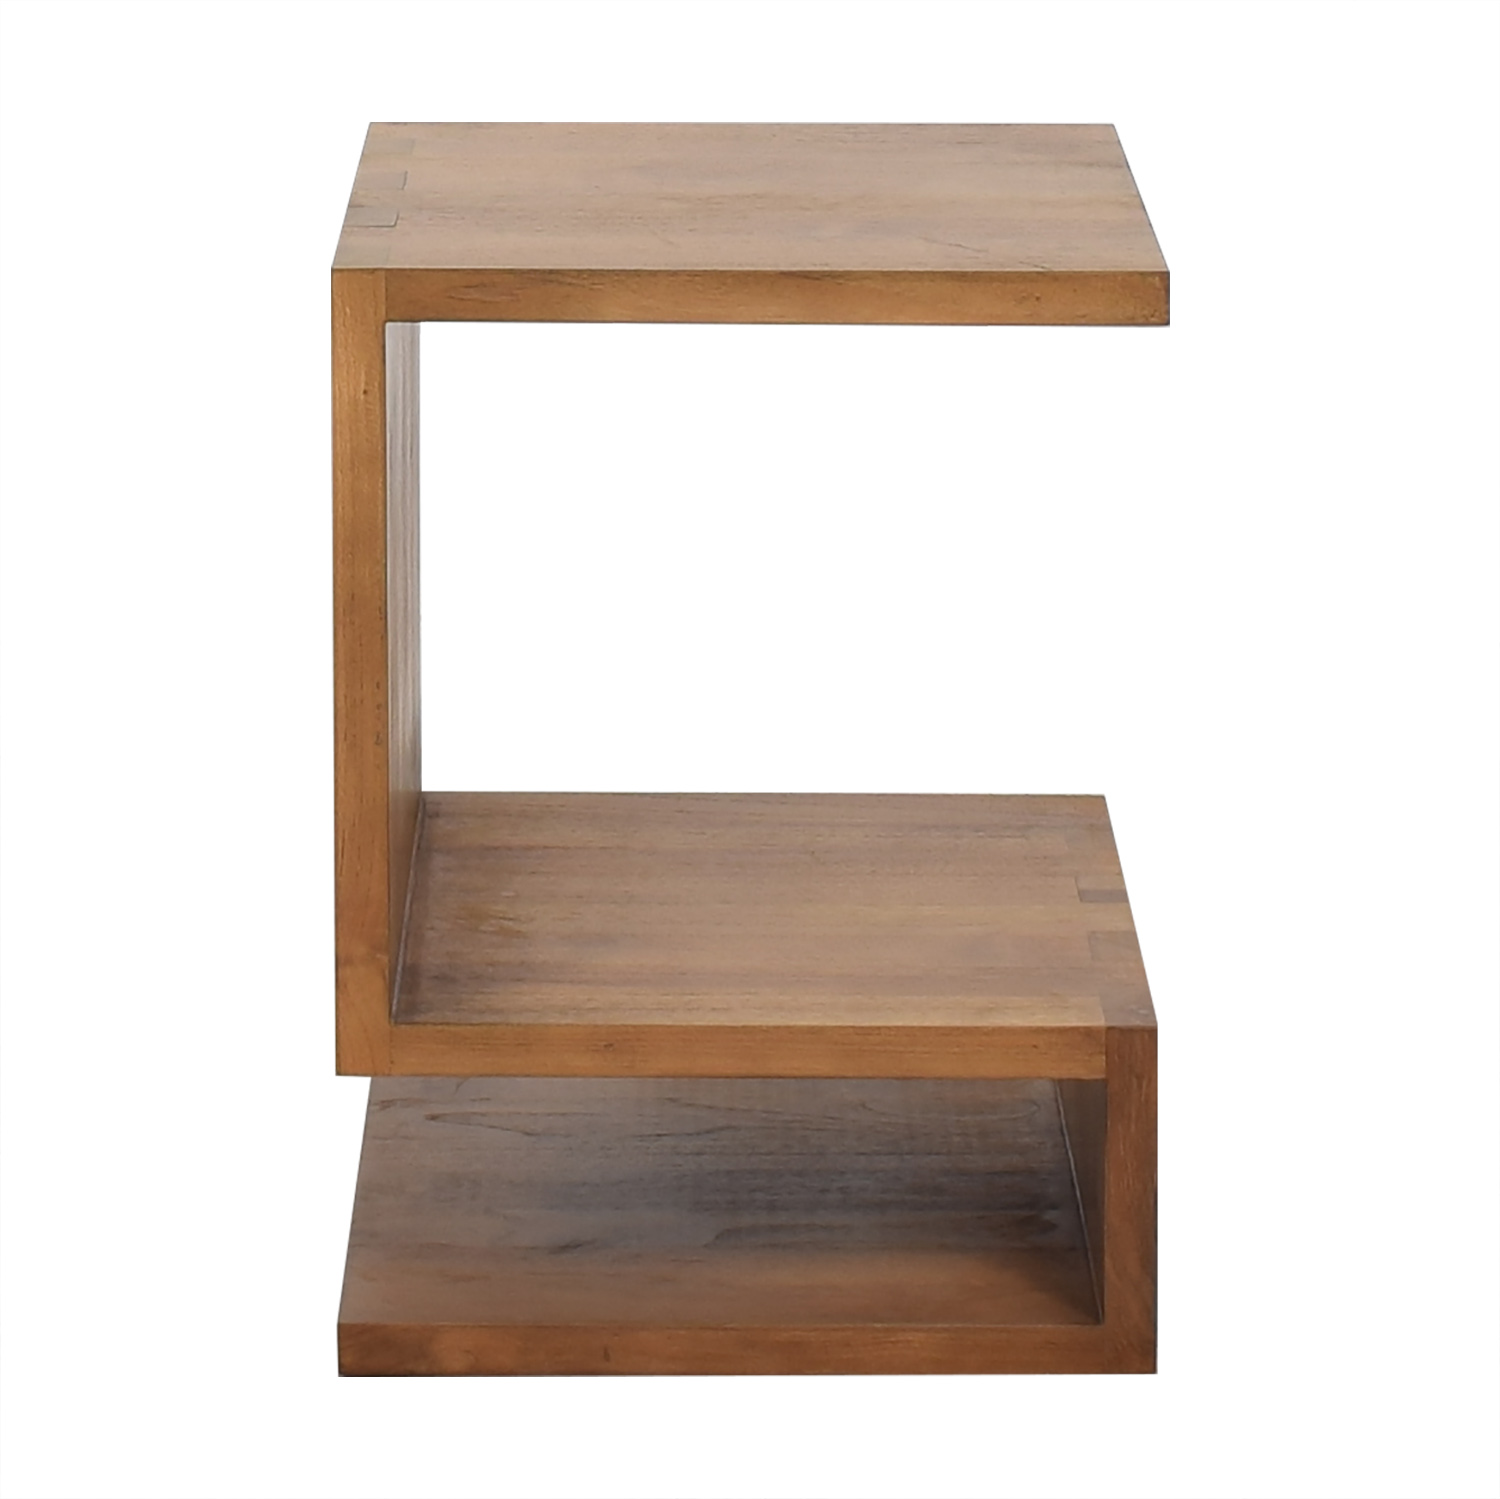 Crate & Barrel Crate & Barrel Entu Side Table dimensions